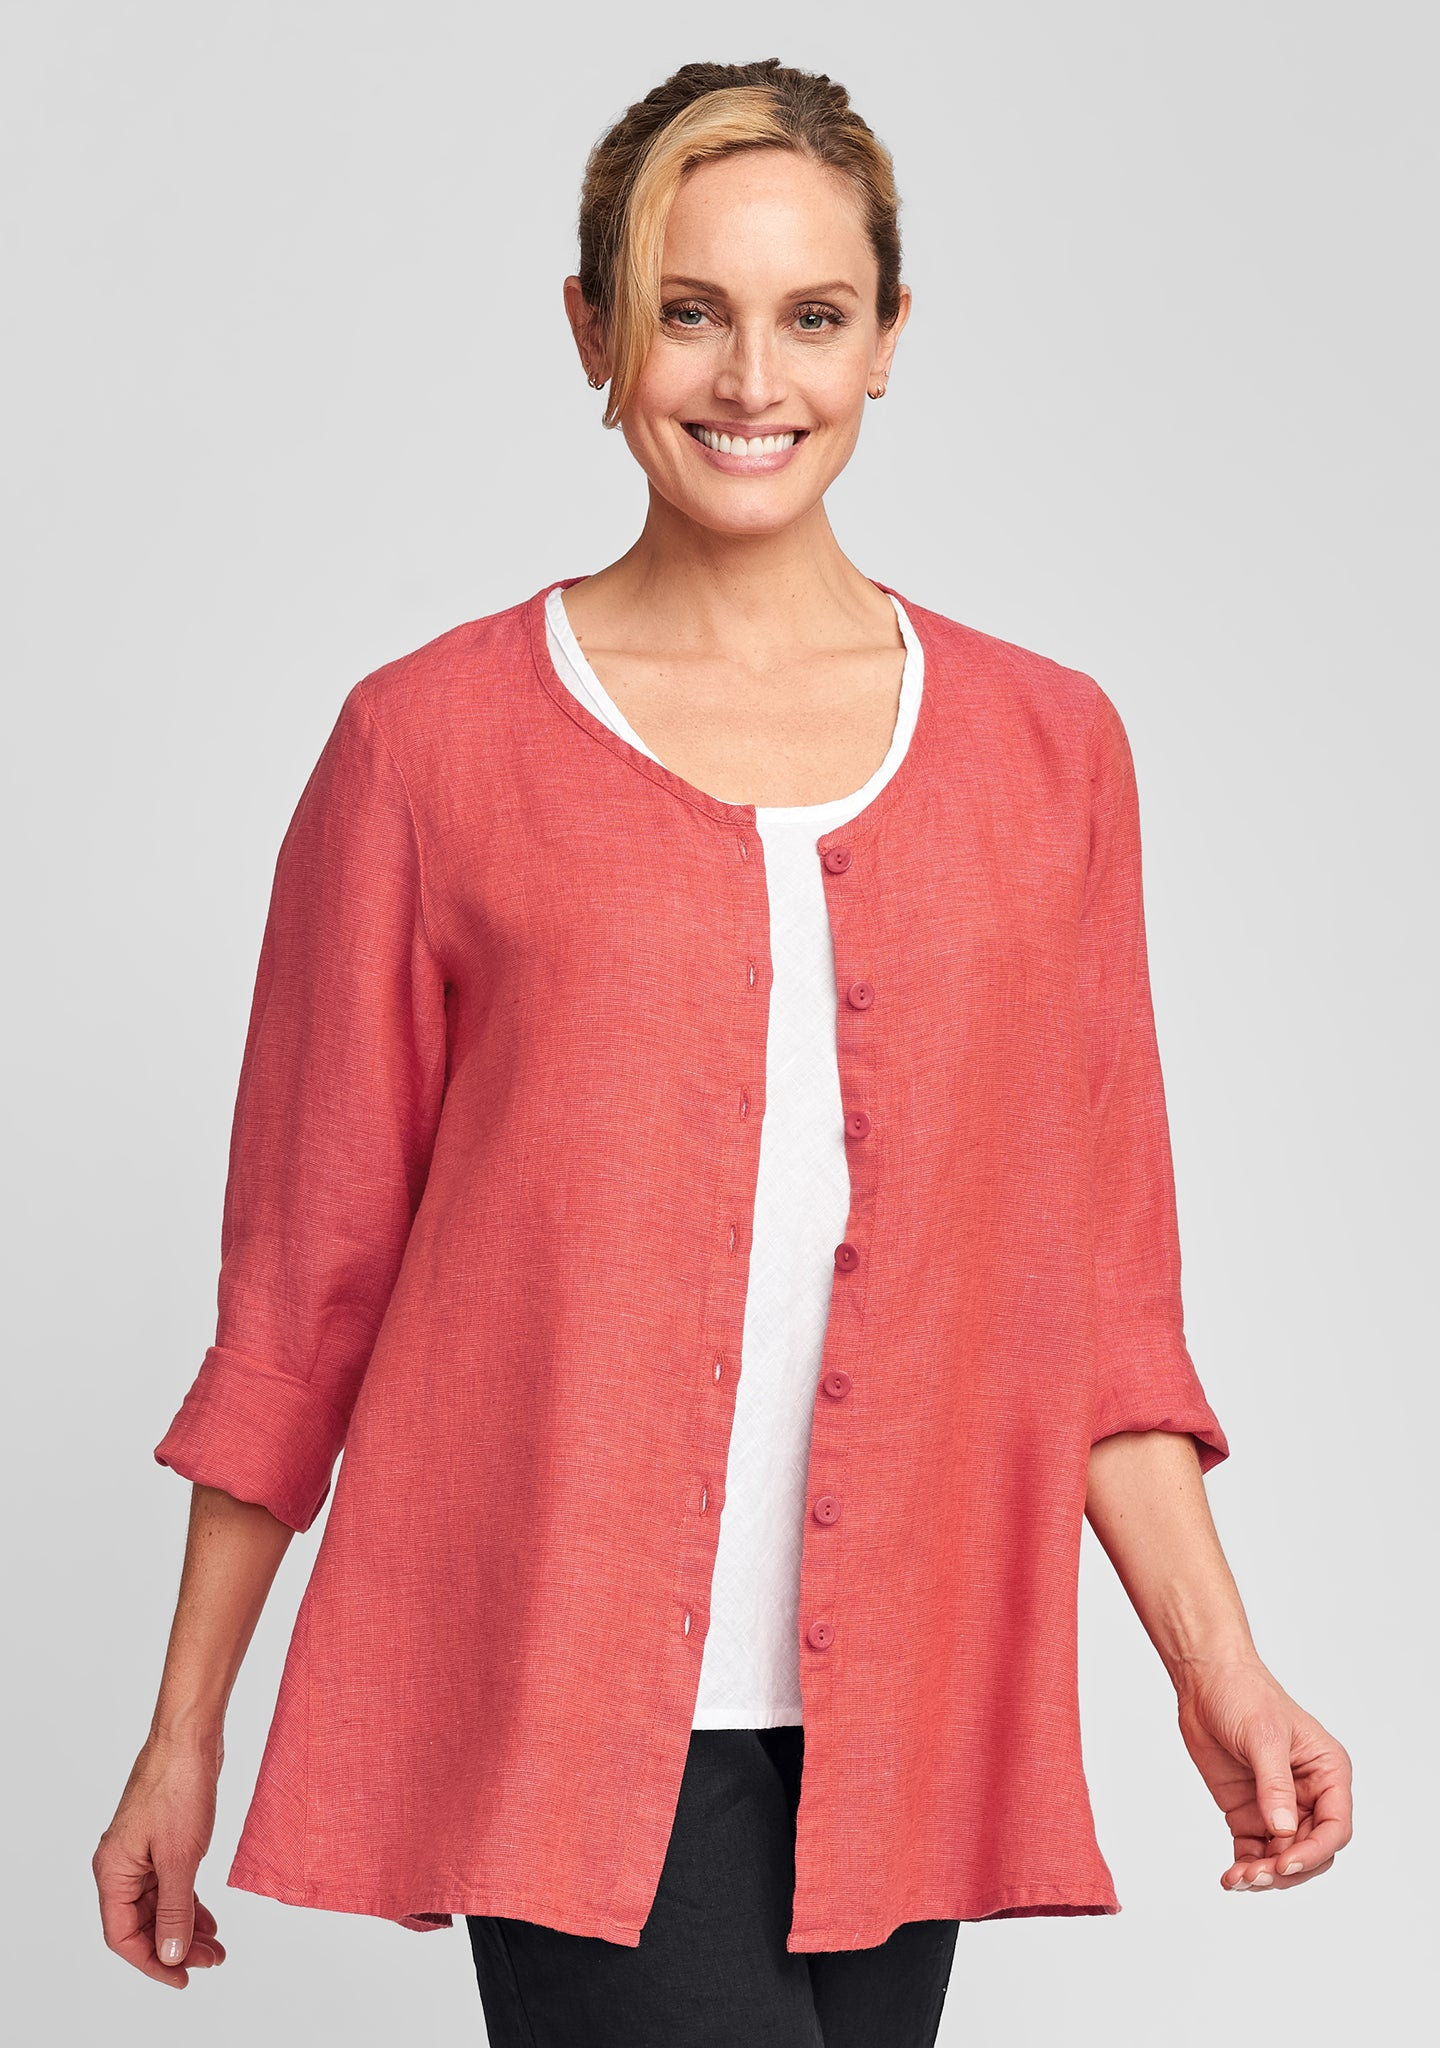 flourish cardi linen cardigan red